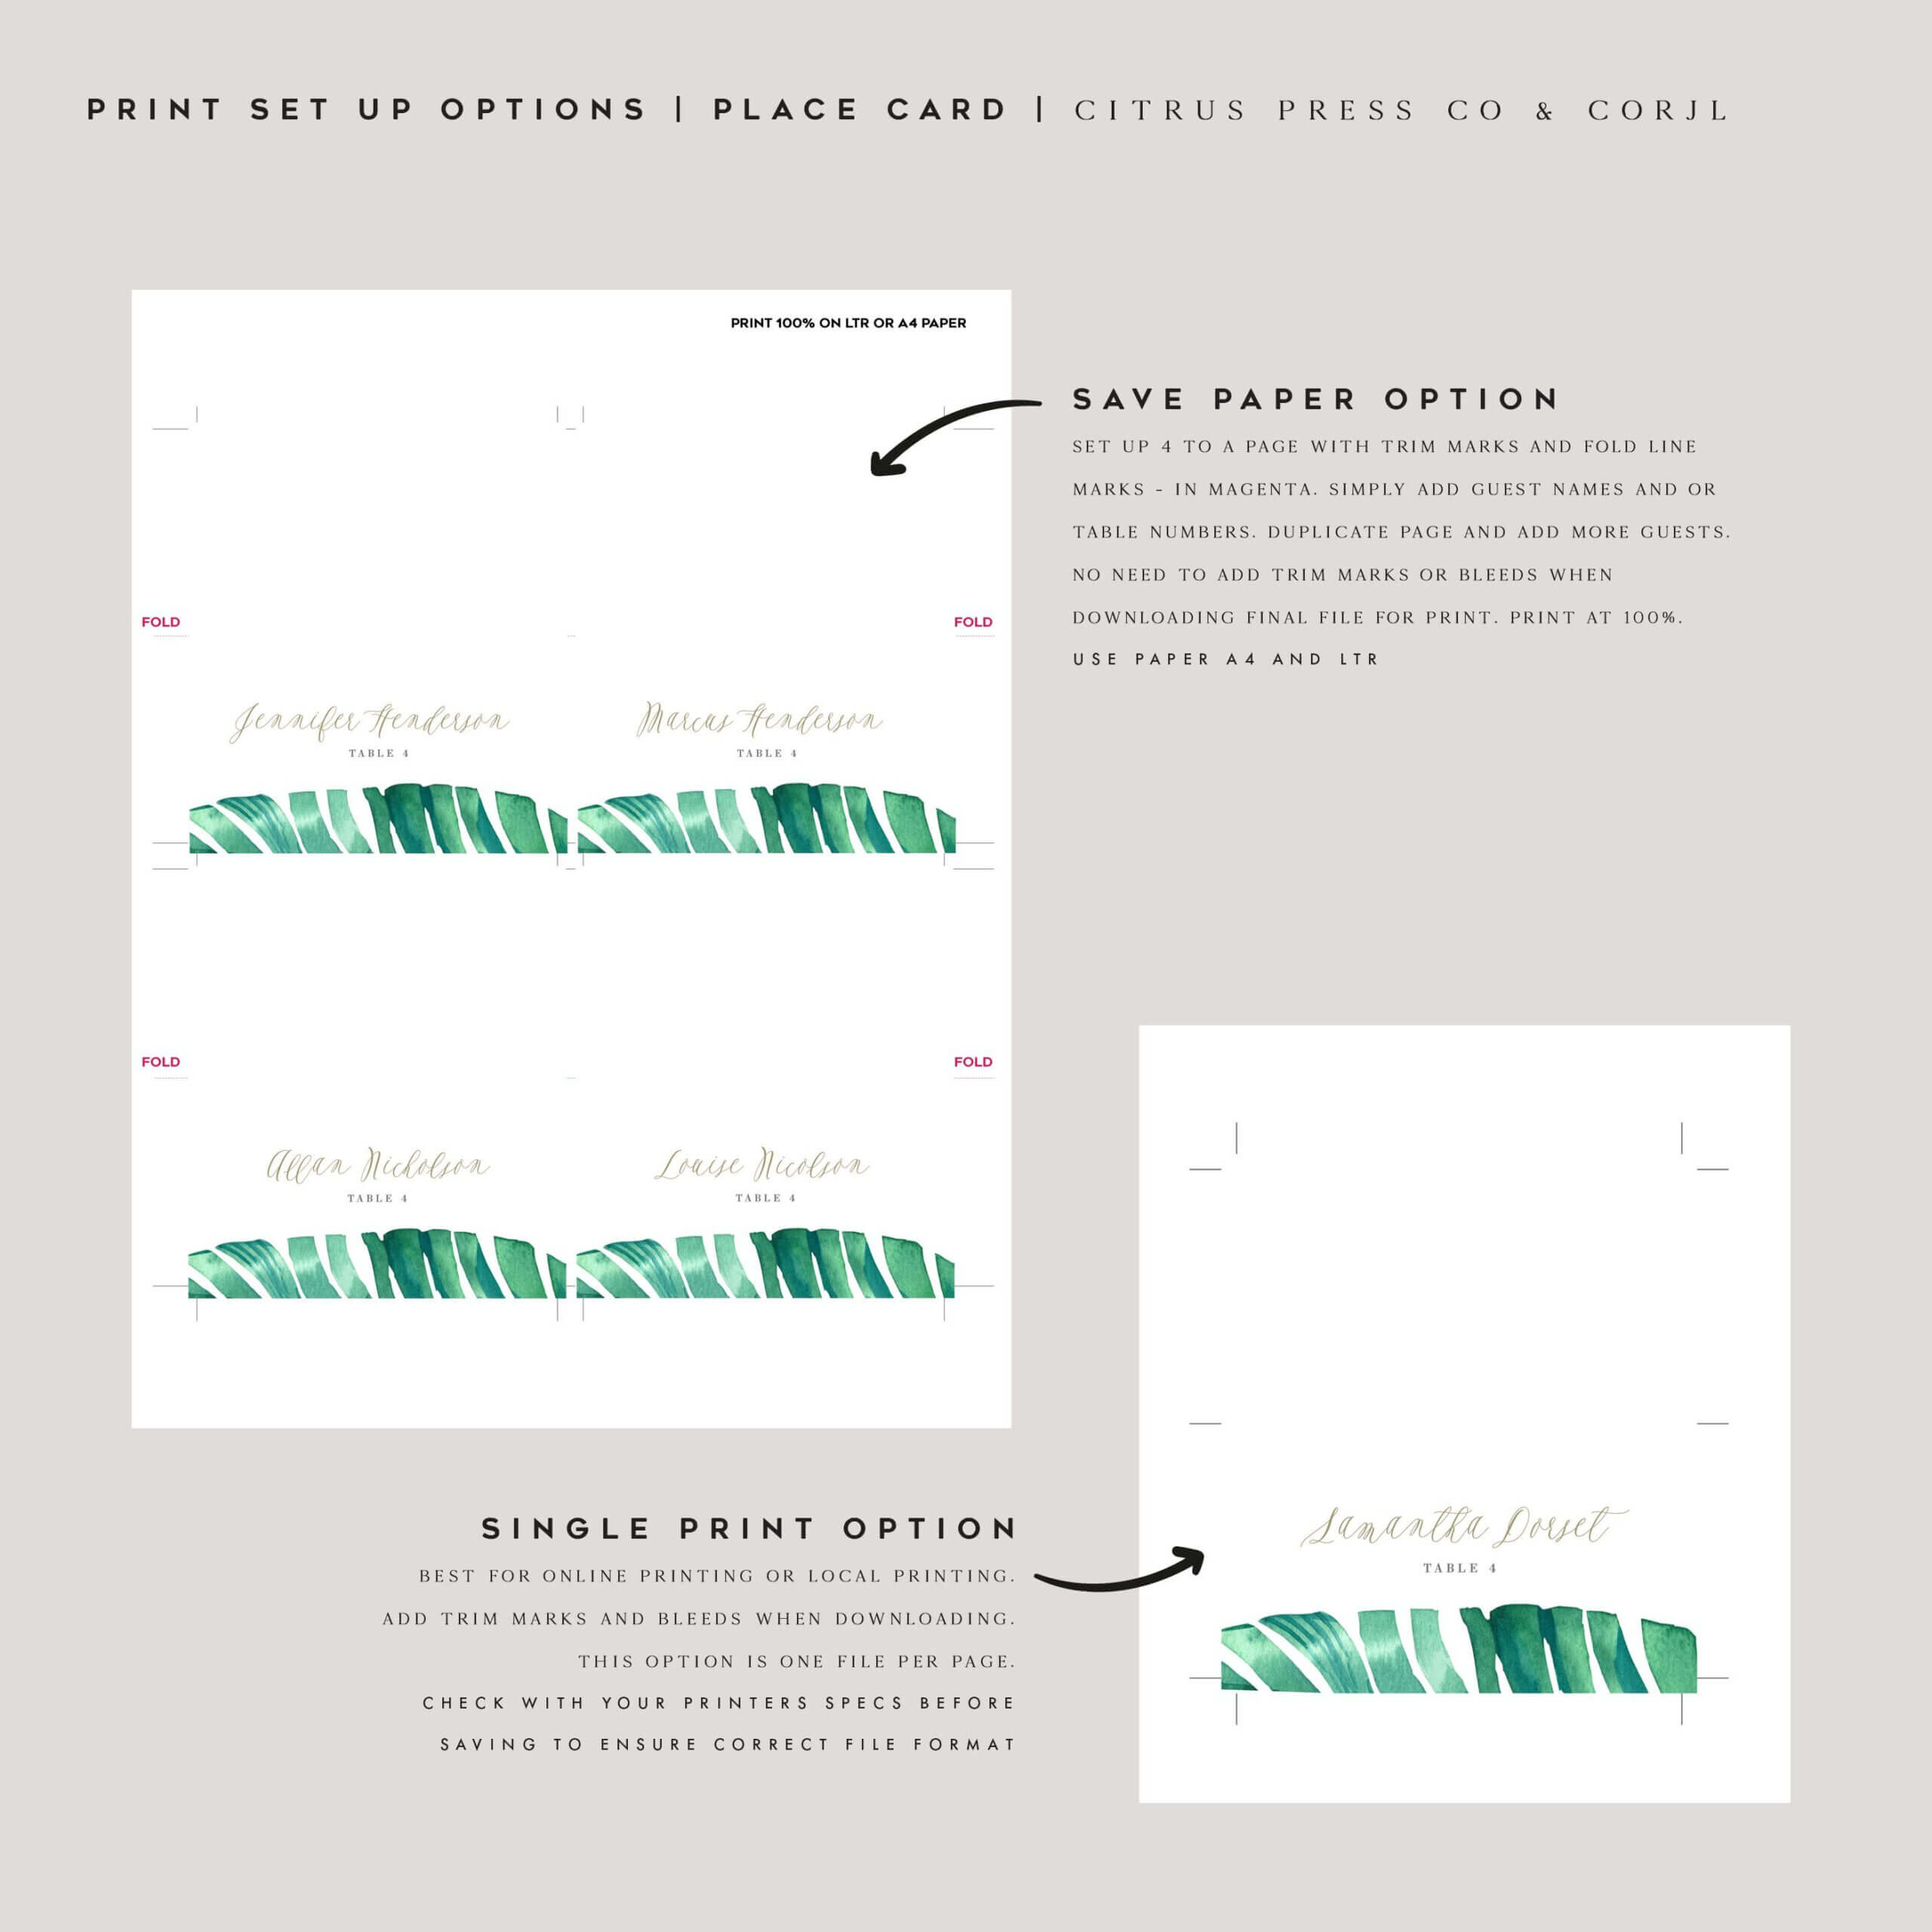 032 Template Ideas Corjl Place Card Wedding Editable Within Place Card Template Free 6 Per Page